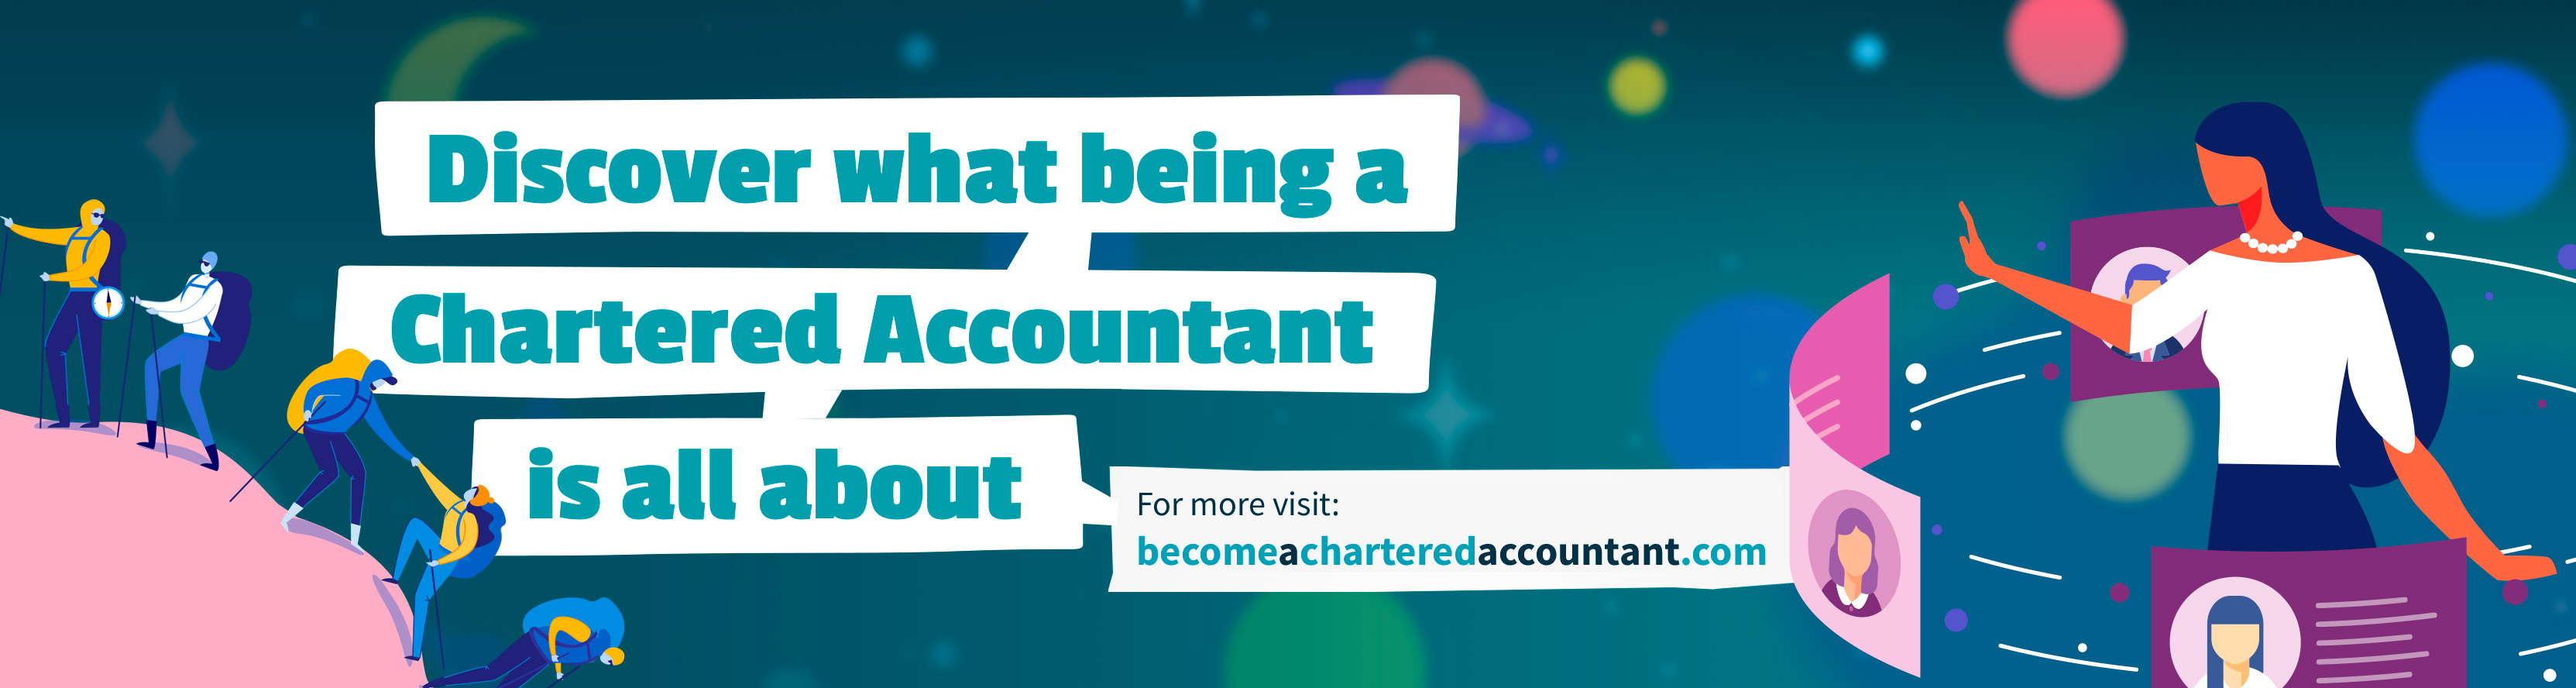 Become A Chartered Accountant